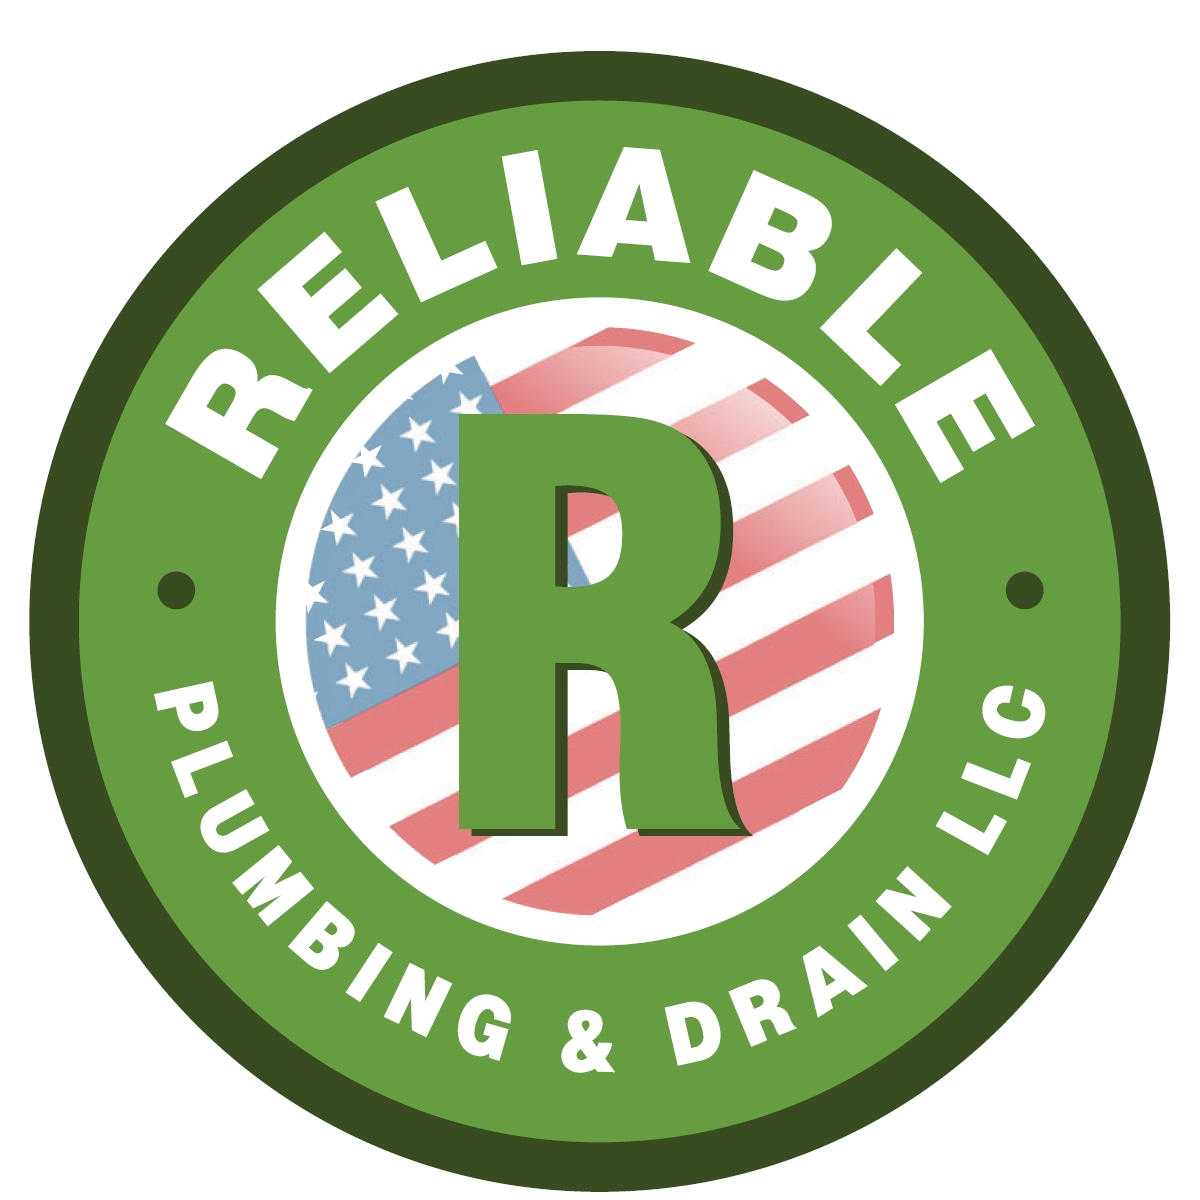 Reliable Plumbing and Drain LLC